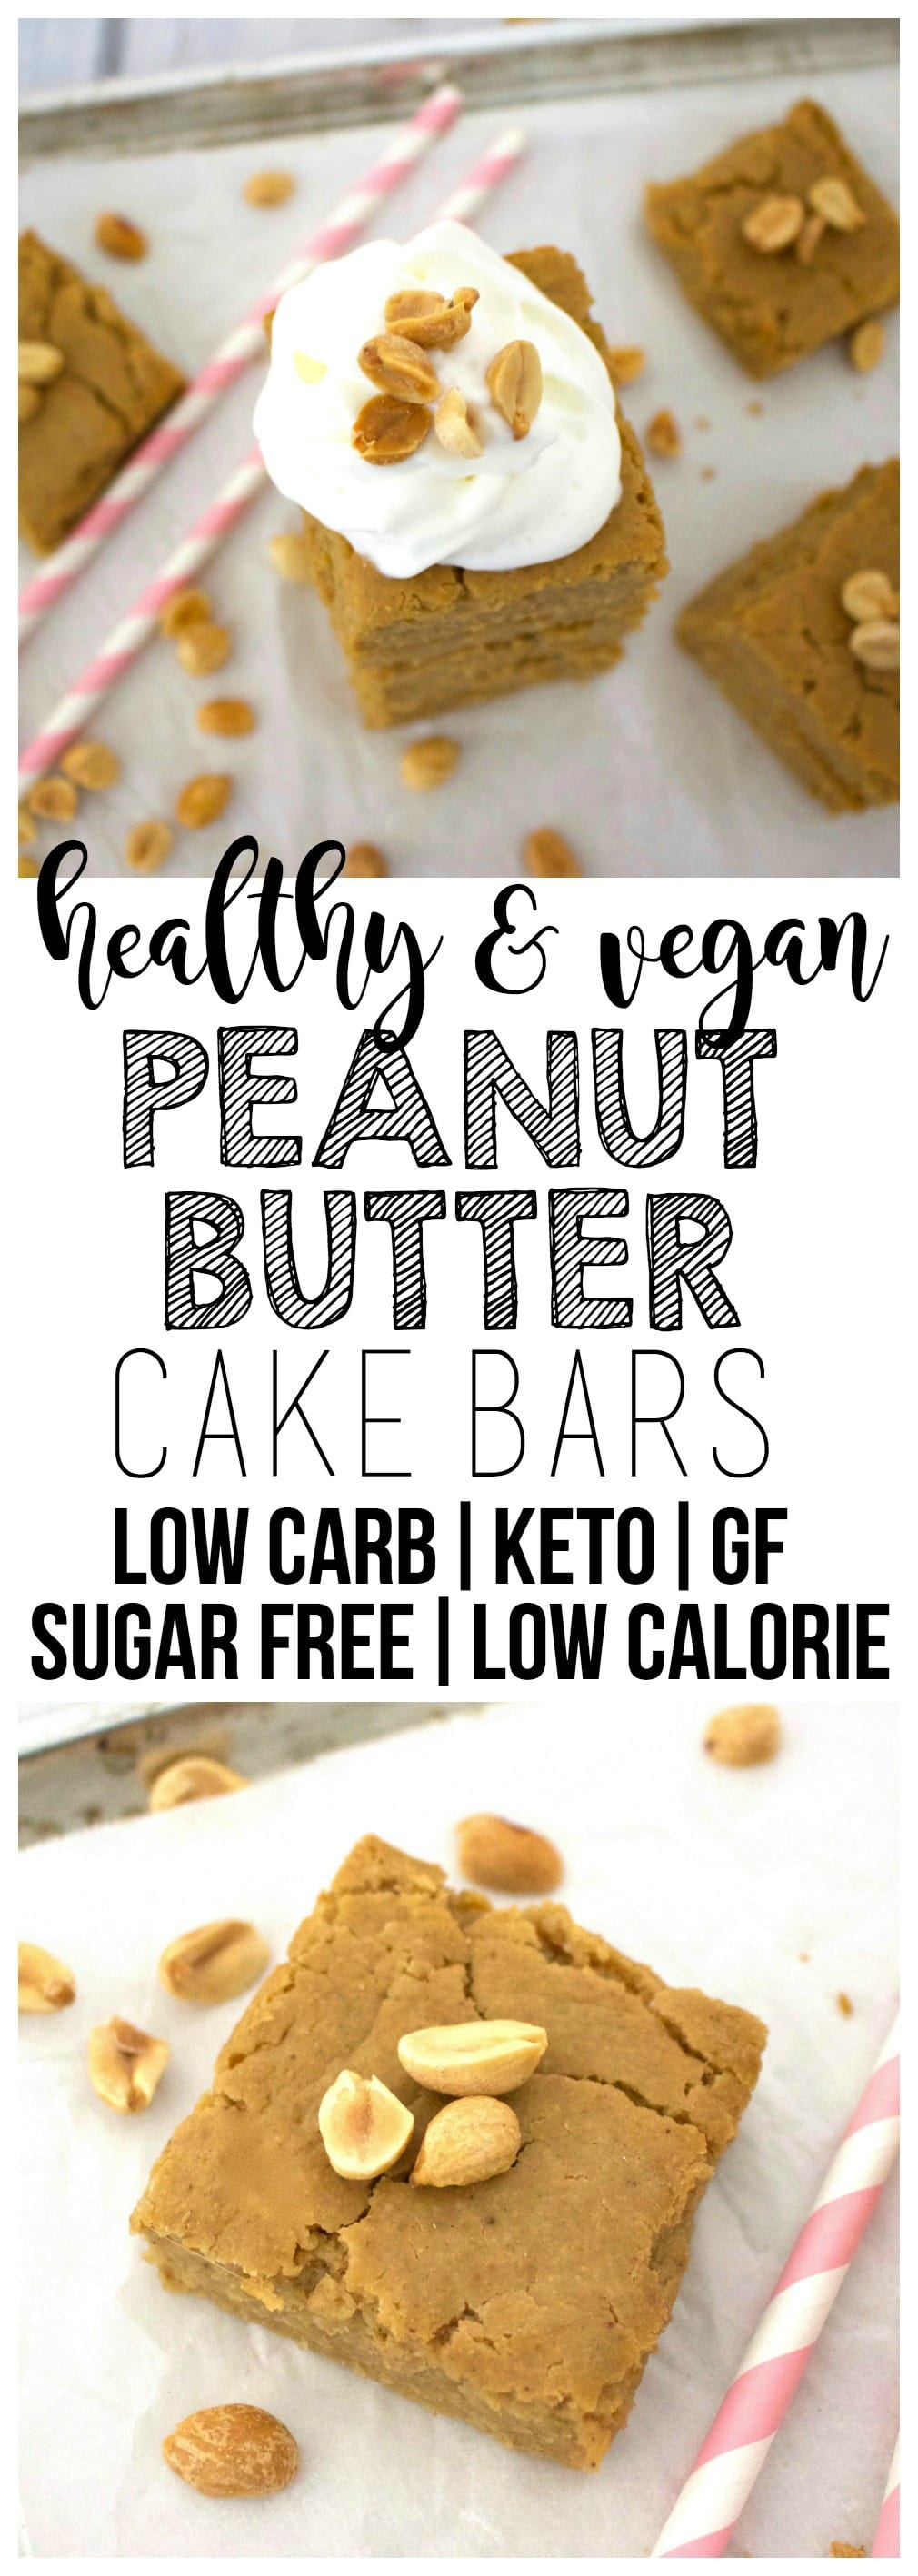 Healthy Peanut Butter Cake Bars (Keto, Sugar-Free, Low-Carb, Oil-Free, Vegan, Gluten-Free)